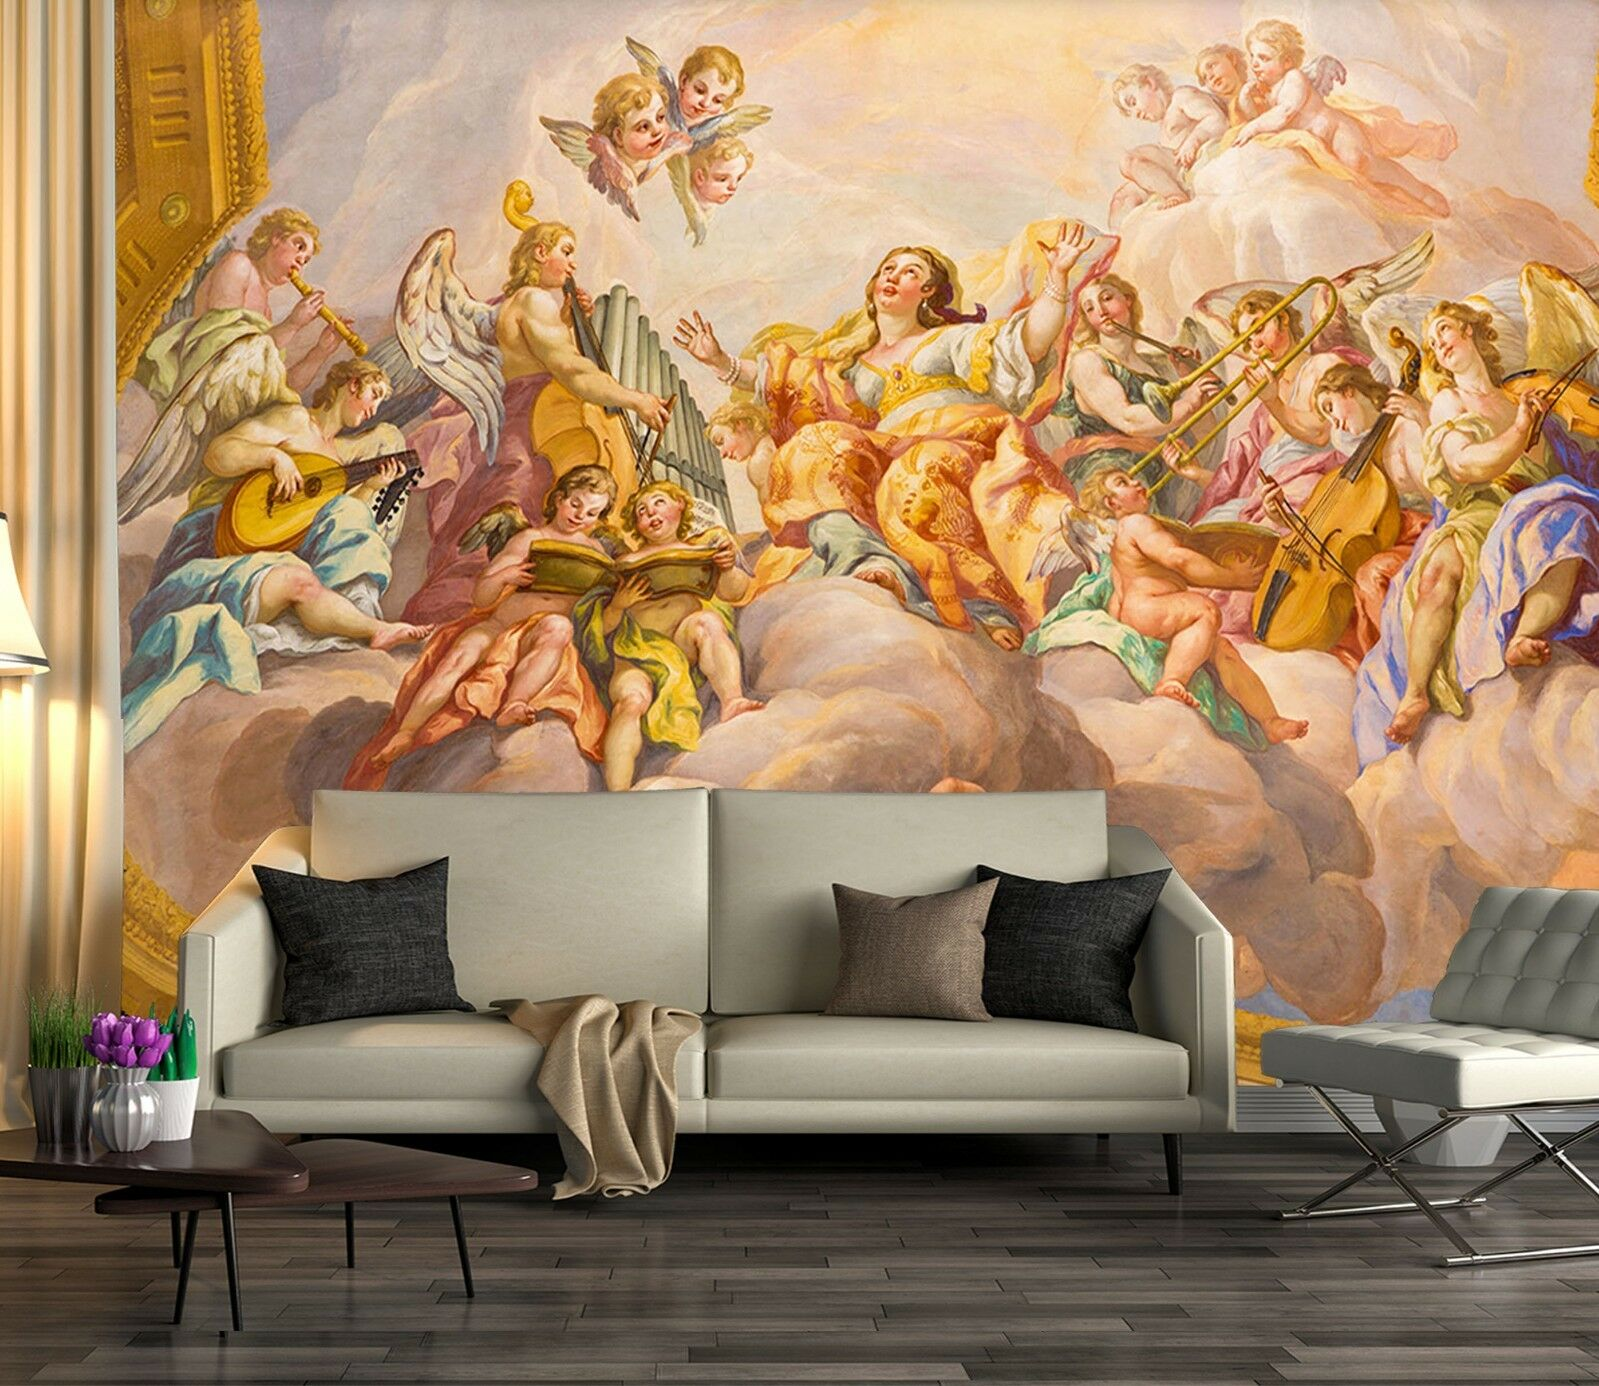 3D Heaven Angel Palace 4 Wall Paper wall Print Decal Wall Deco Indoor wall Mural